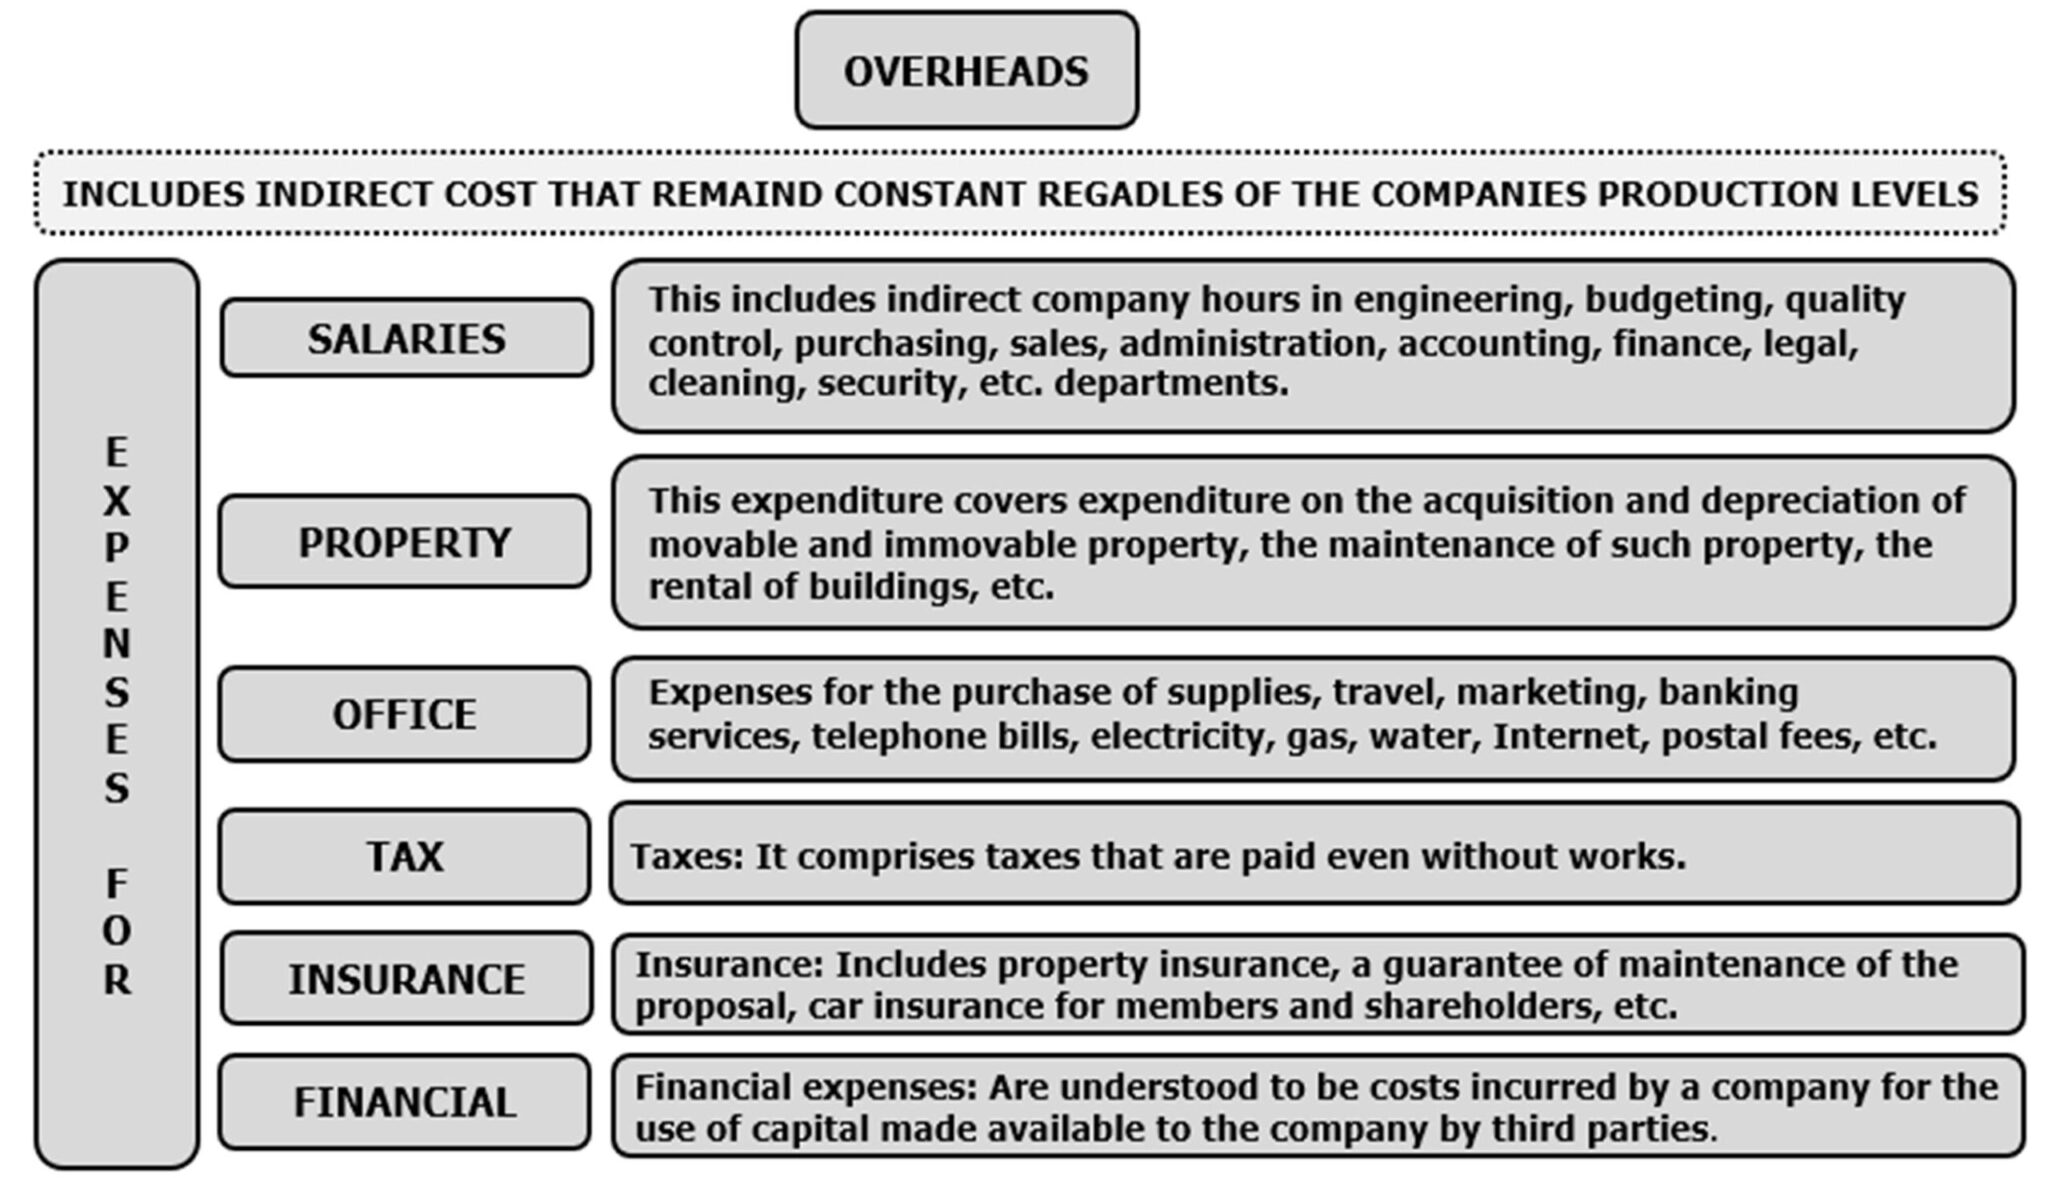 How to Calculate Overhead cost